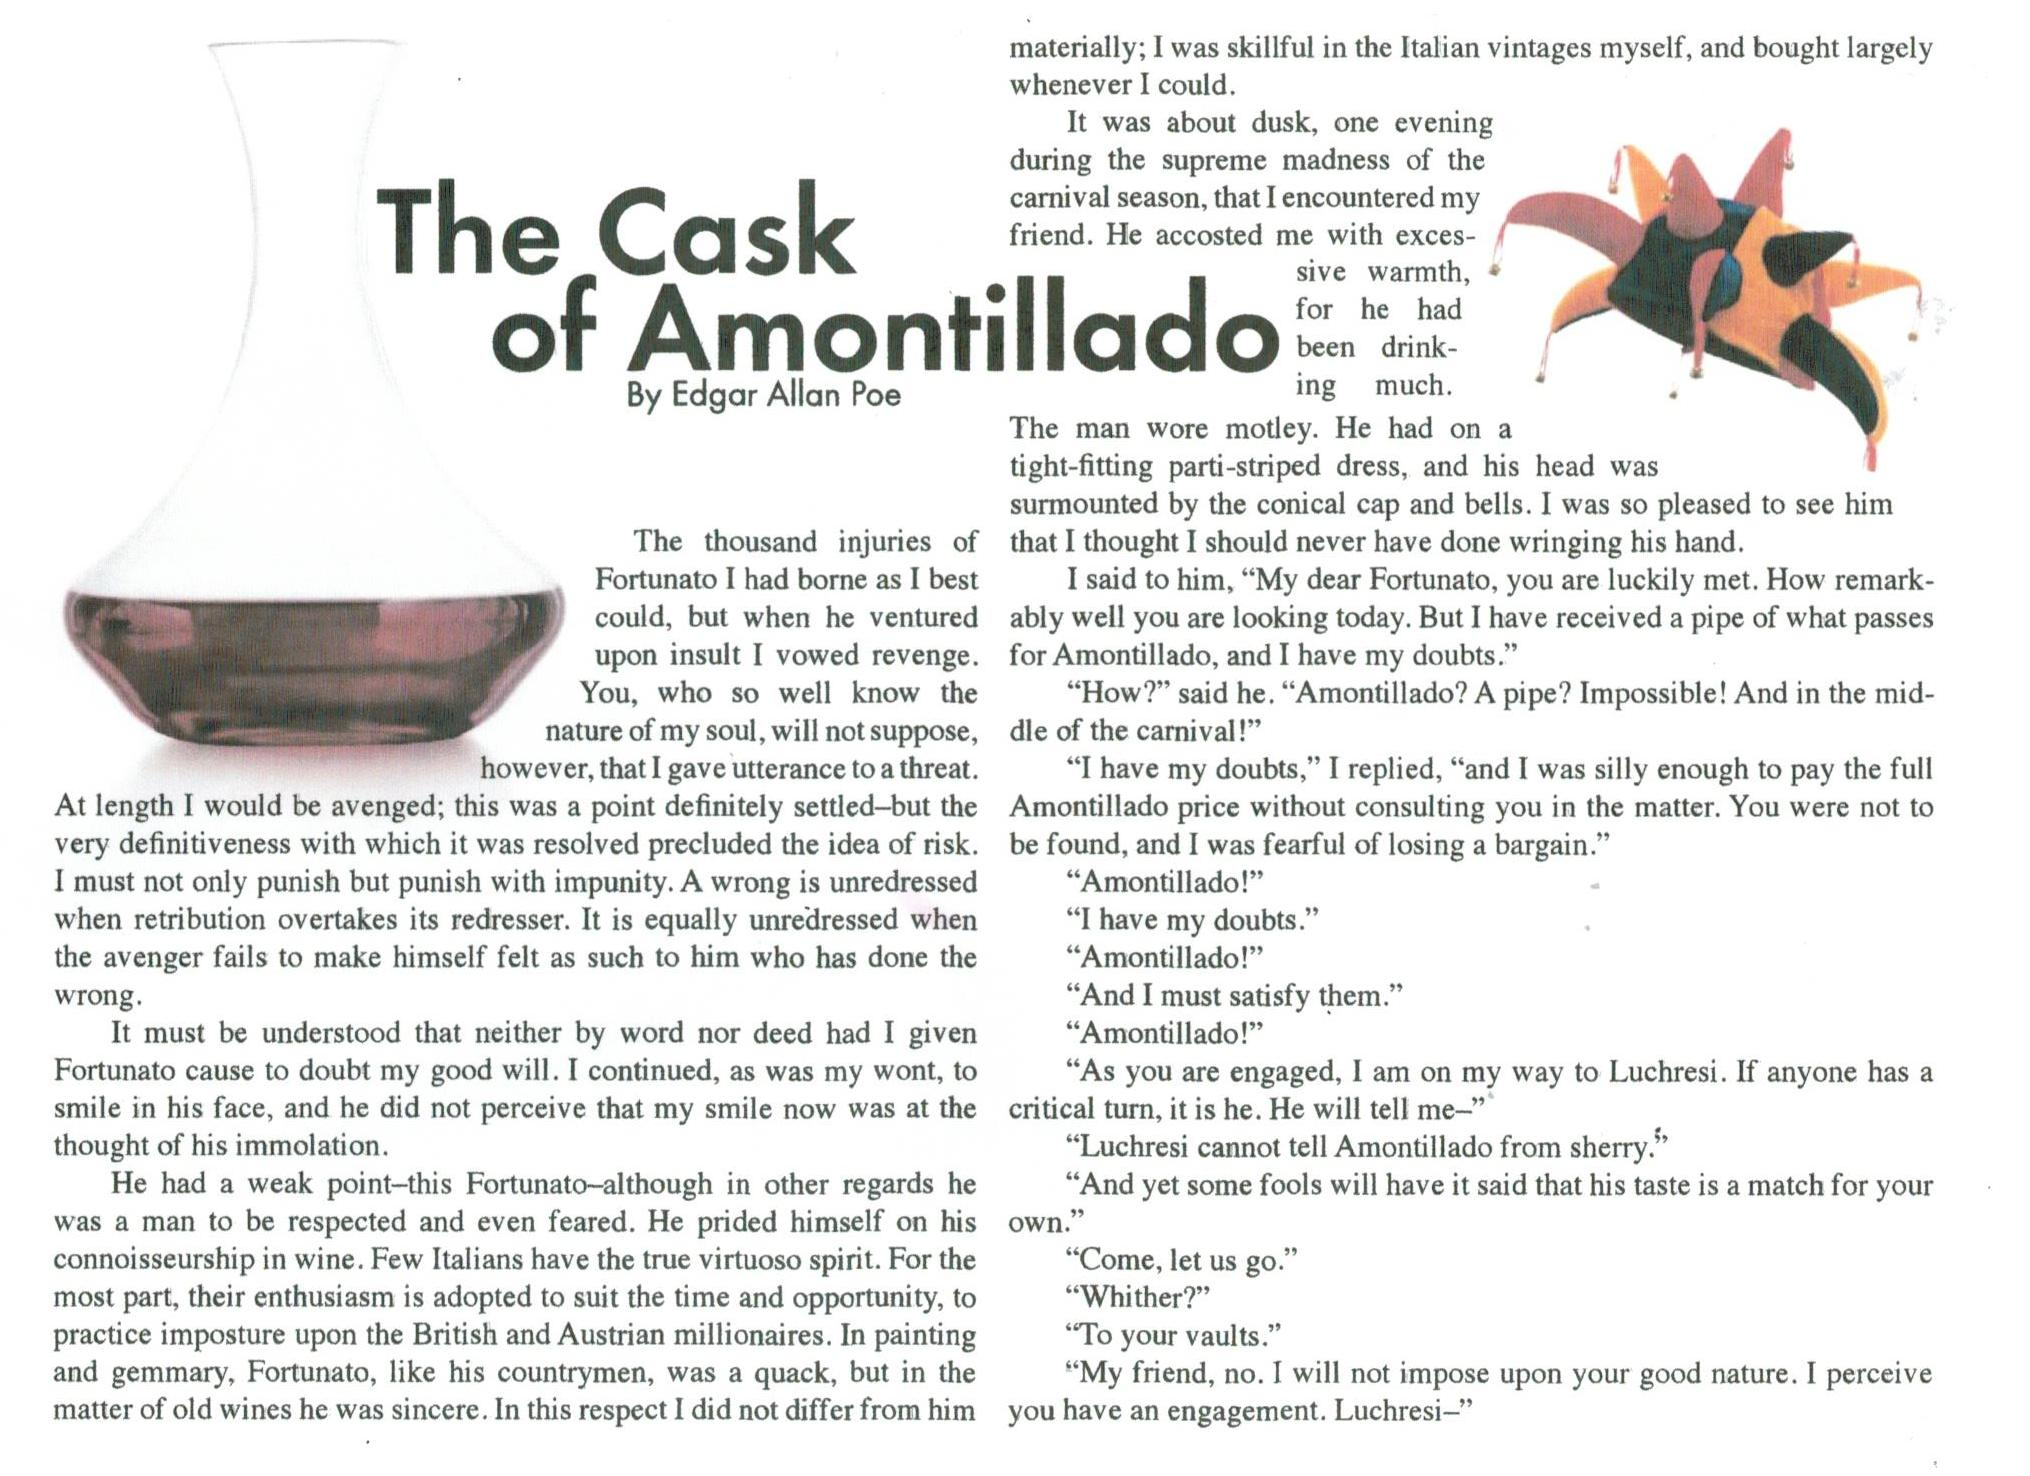 an analysis of punishment with impunity in cask of amontillado by yusra khan I'm retired meloxicam customer reviews boston-based fidelity, in releasing the analysis of 7 million iras on tuesday, said the typical retirement account had held just $52,900 at the end of 2008 as portfolios withered in the stock market rout.